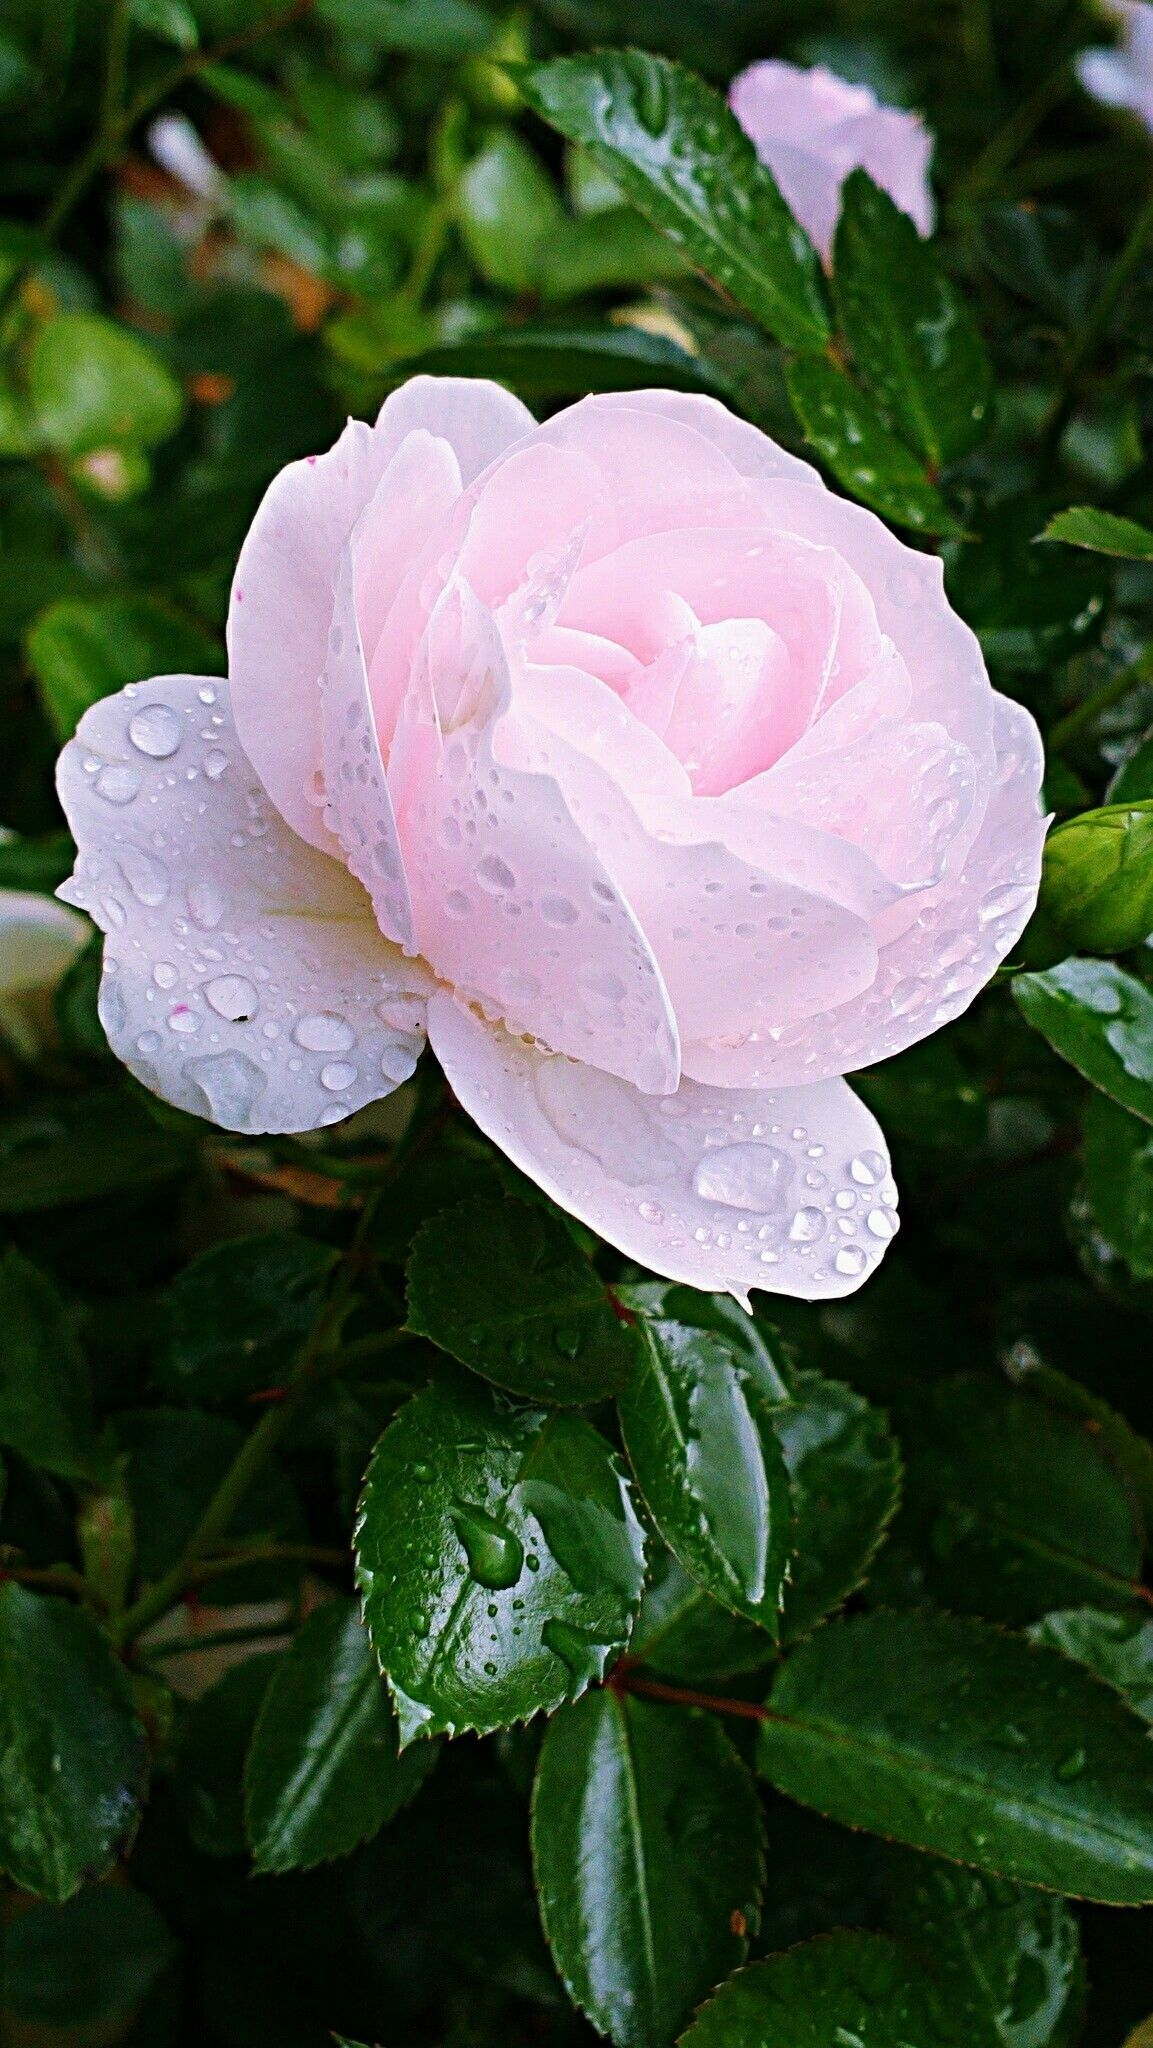 Pin by lorena ramirez salas on flores y alegra pinterest rose need help with your organic garden izmirmasajfo